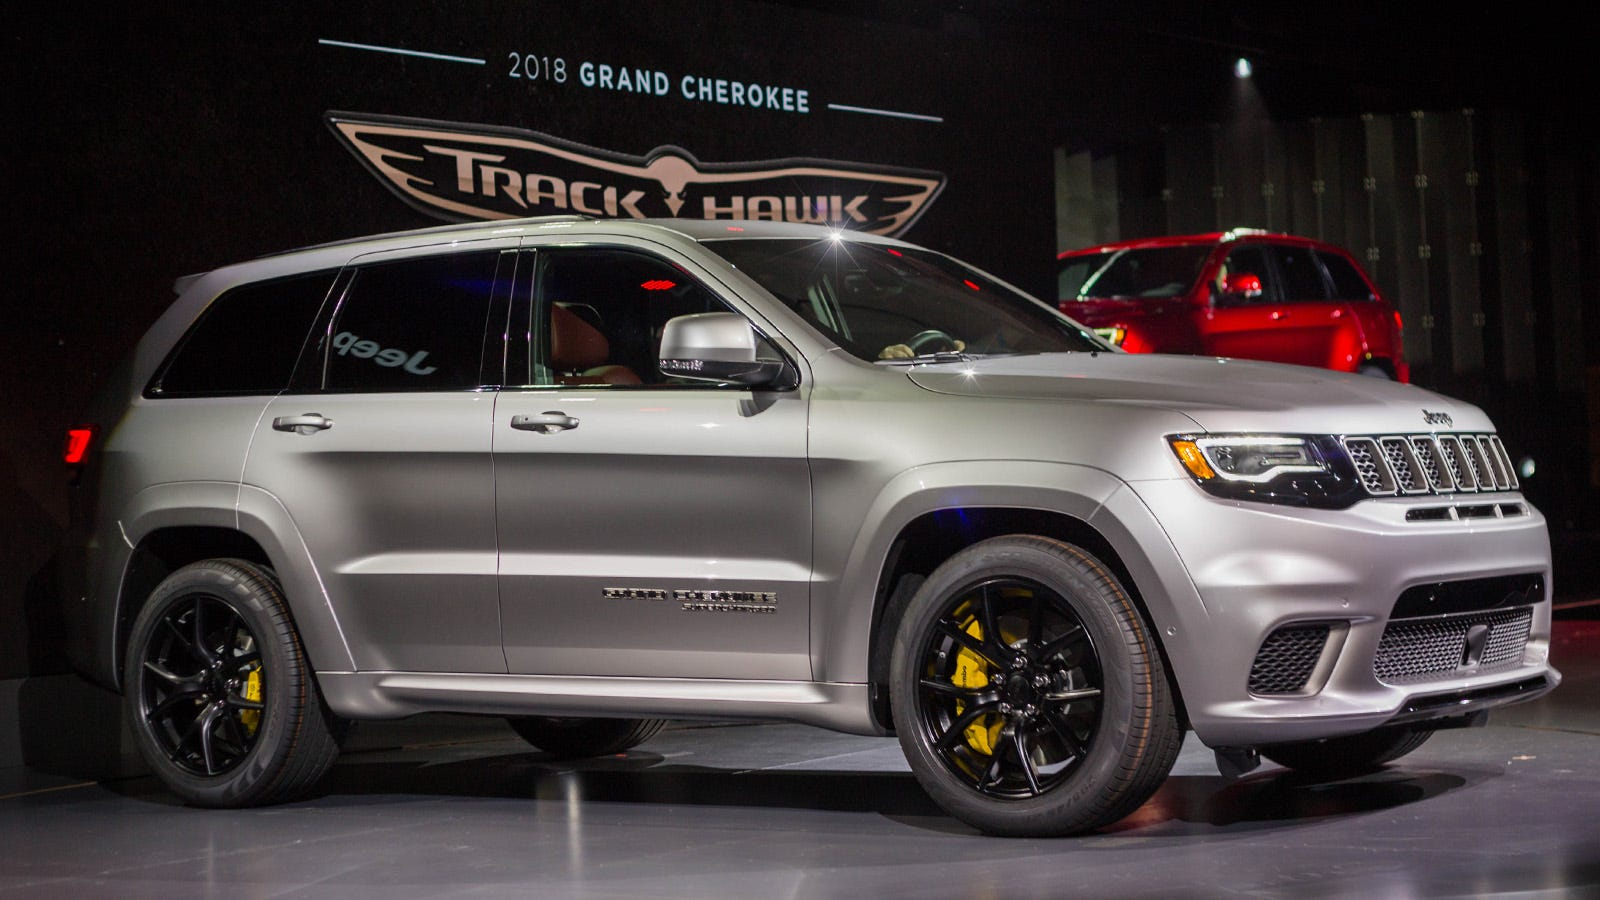 the hellcat-powered 2018 jeep trackhawk is quicker 0-60 than the